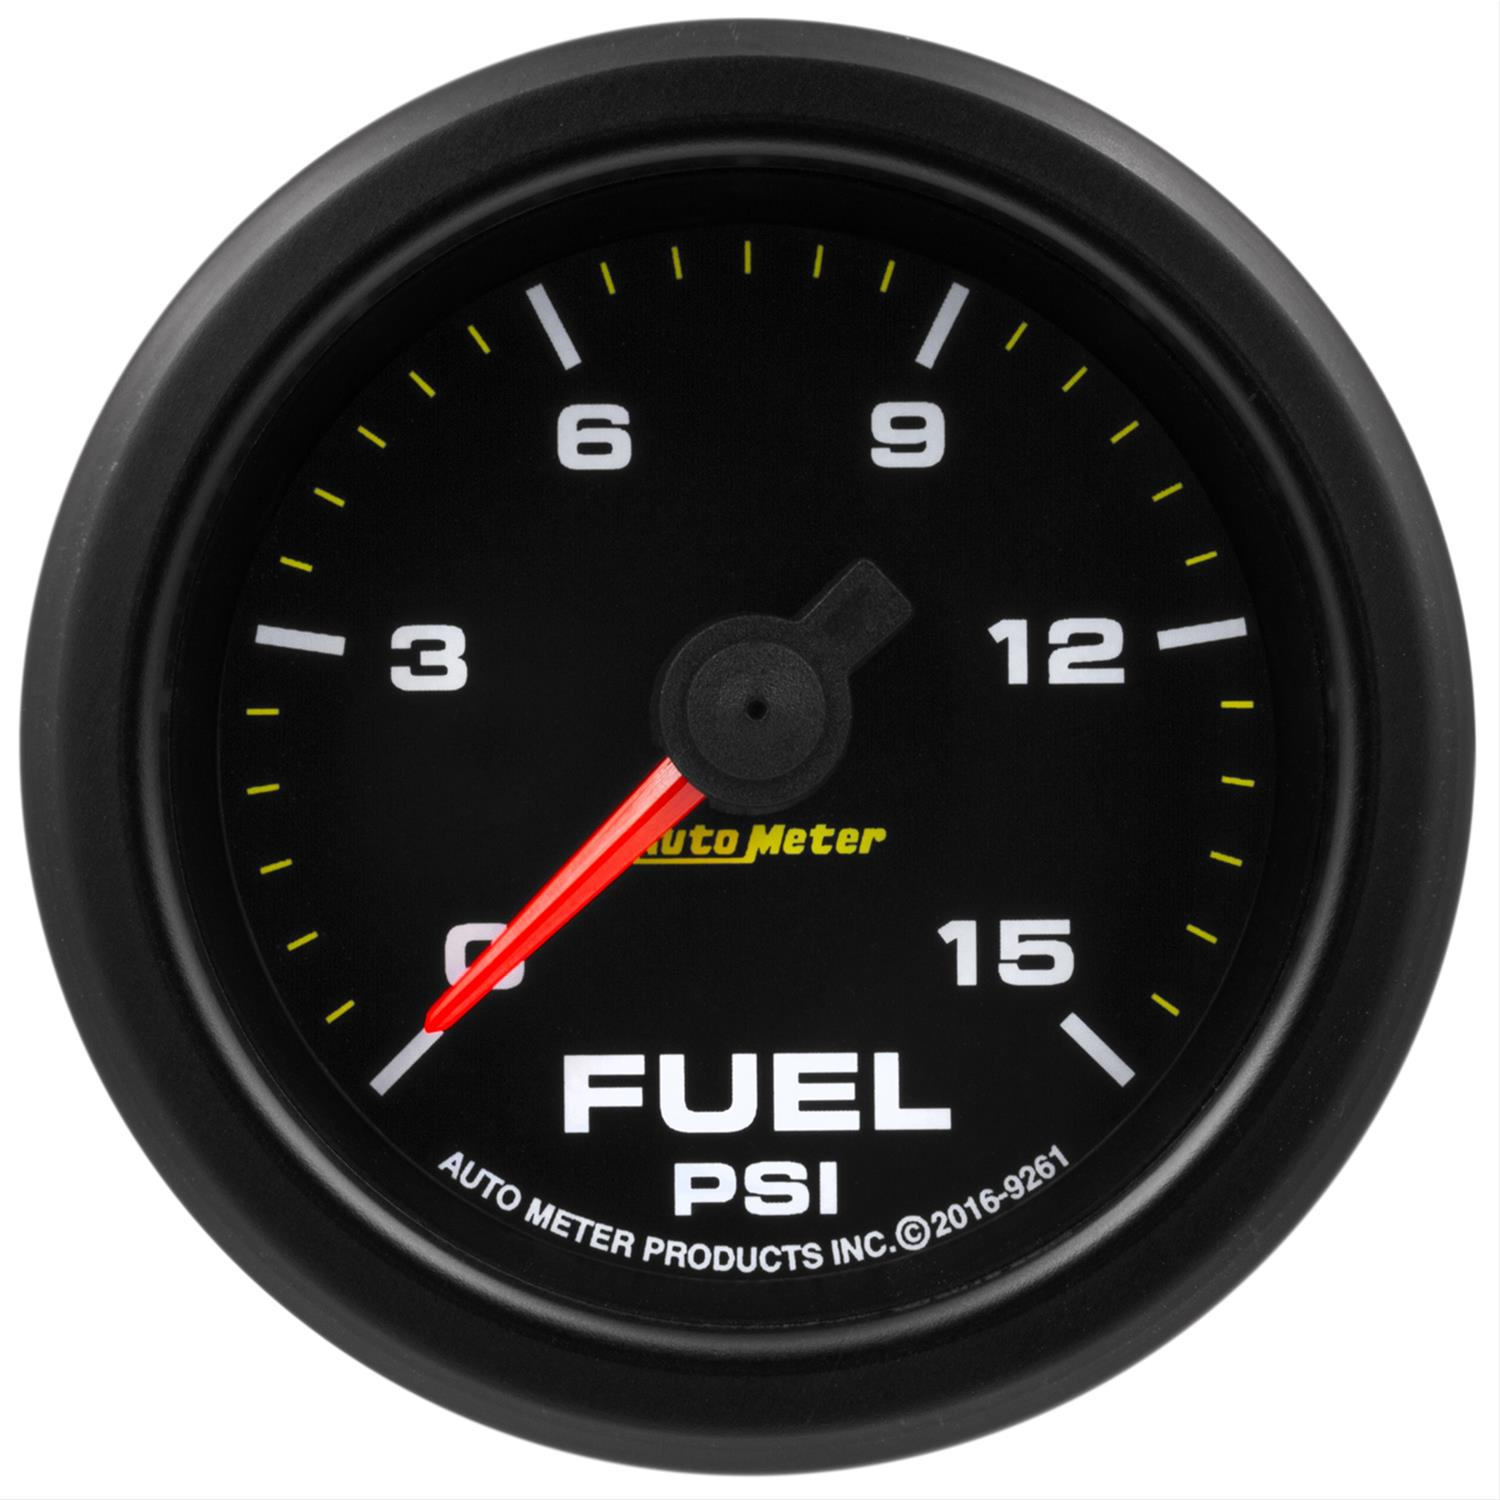 Auto Meter 5667 Elite 2-1//16 0-15 PSI Fuel Pressure Gauge